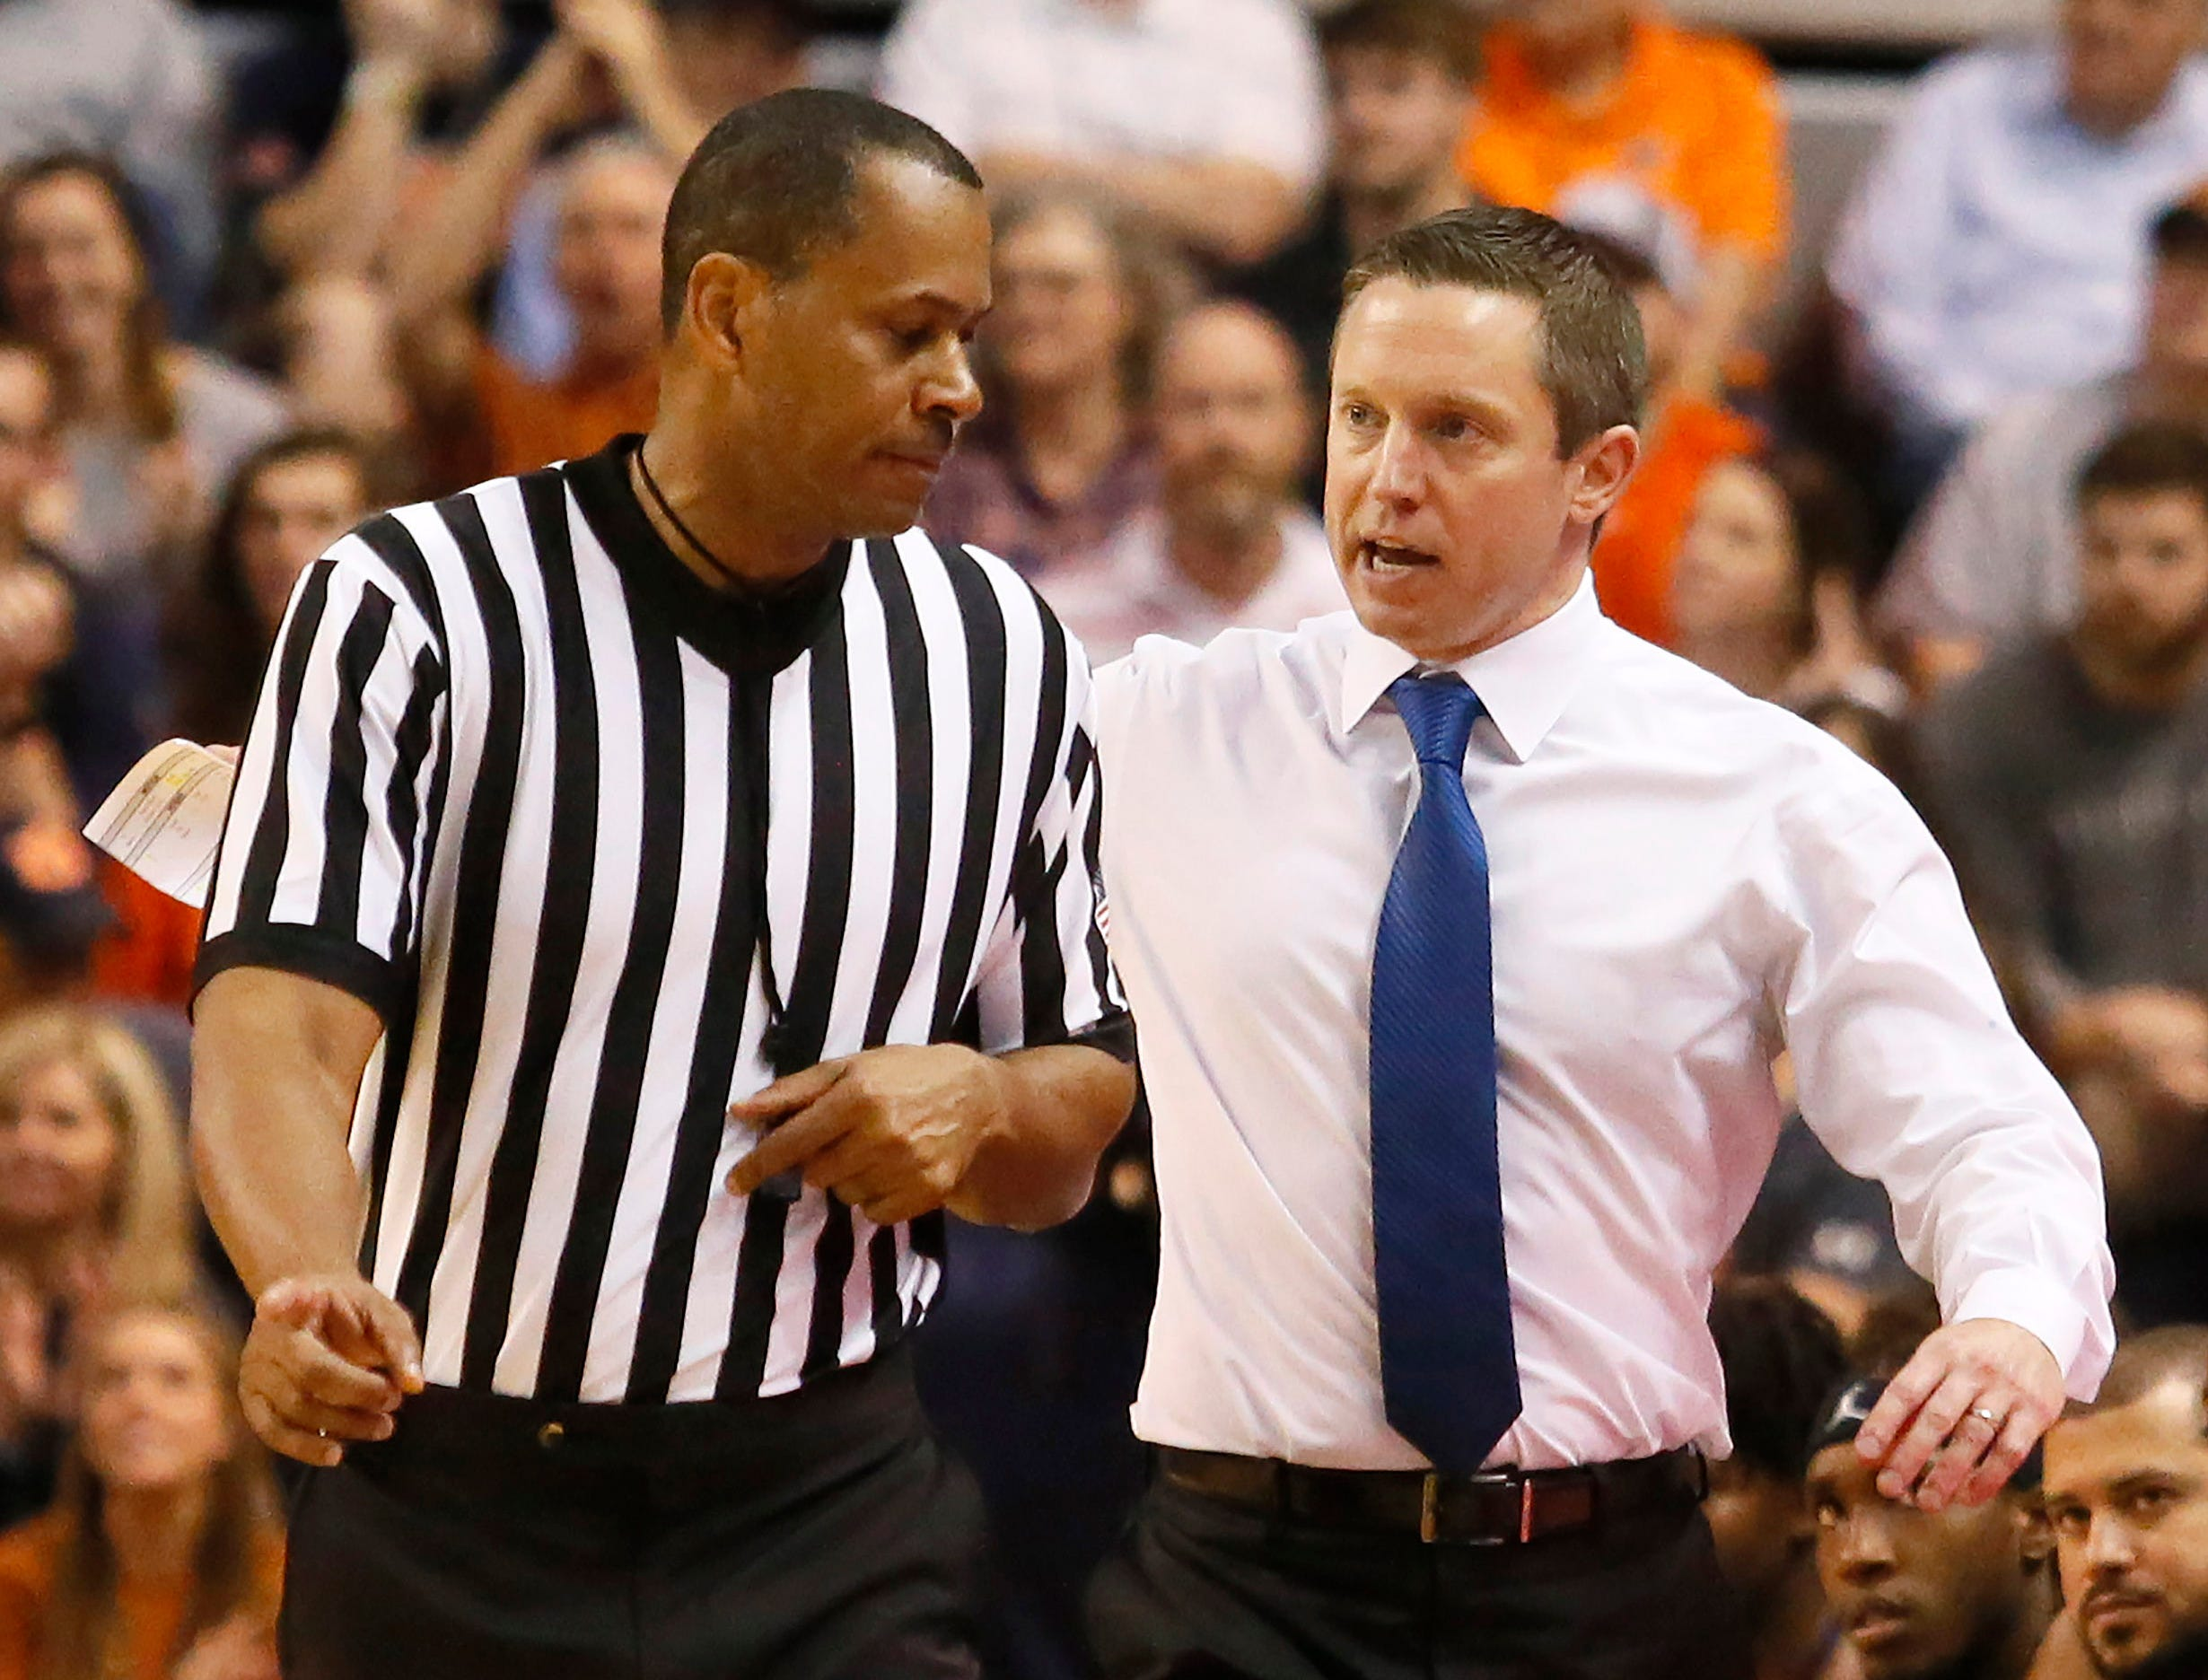 Feb 5, 2019; Auburn, AL, USA; Florida Gators head coach Mike White talks to an official during the first half against the Auburn Tigers at Auburn Arena. Mandatory Credit: John Reed-USA TODAY Sports